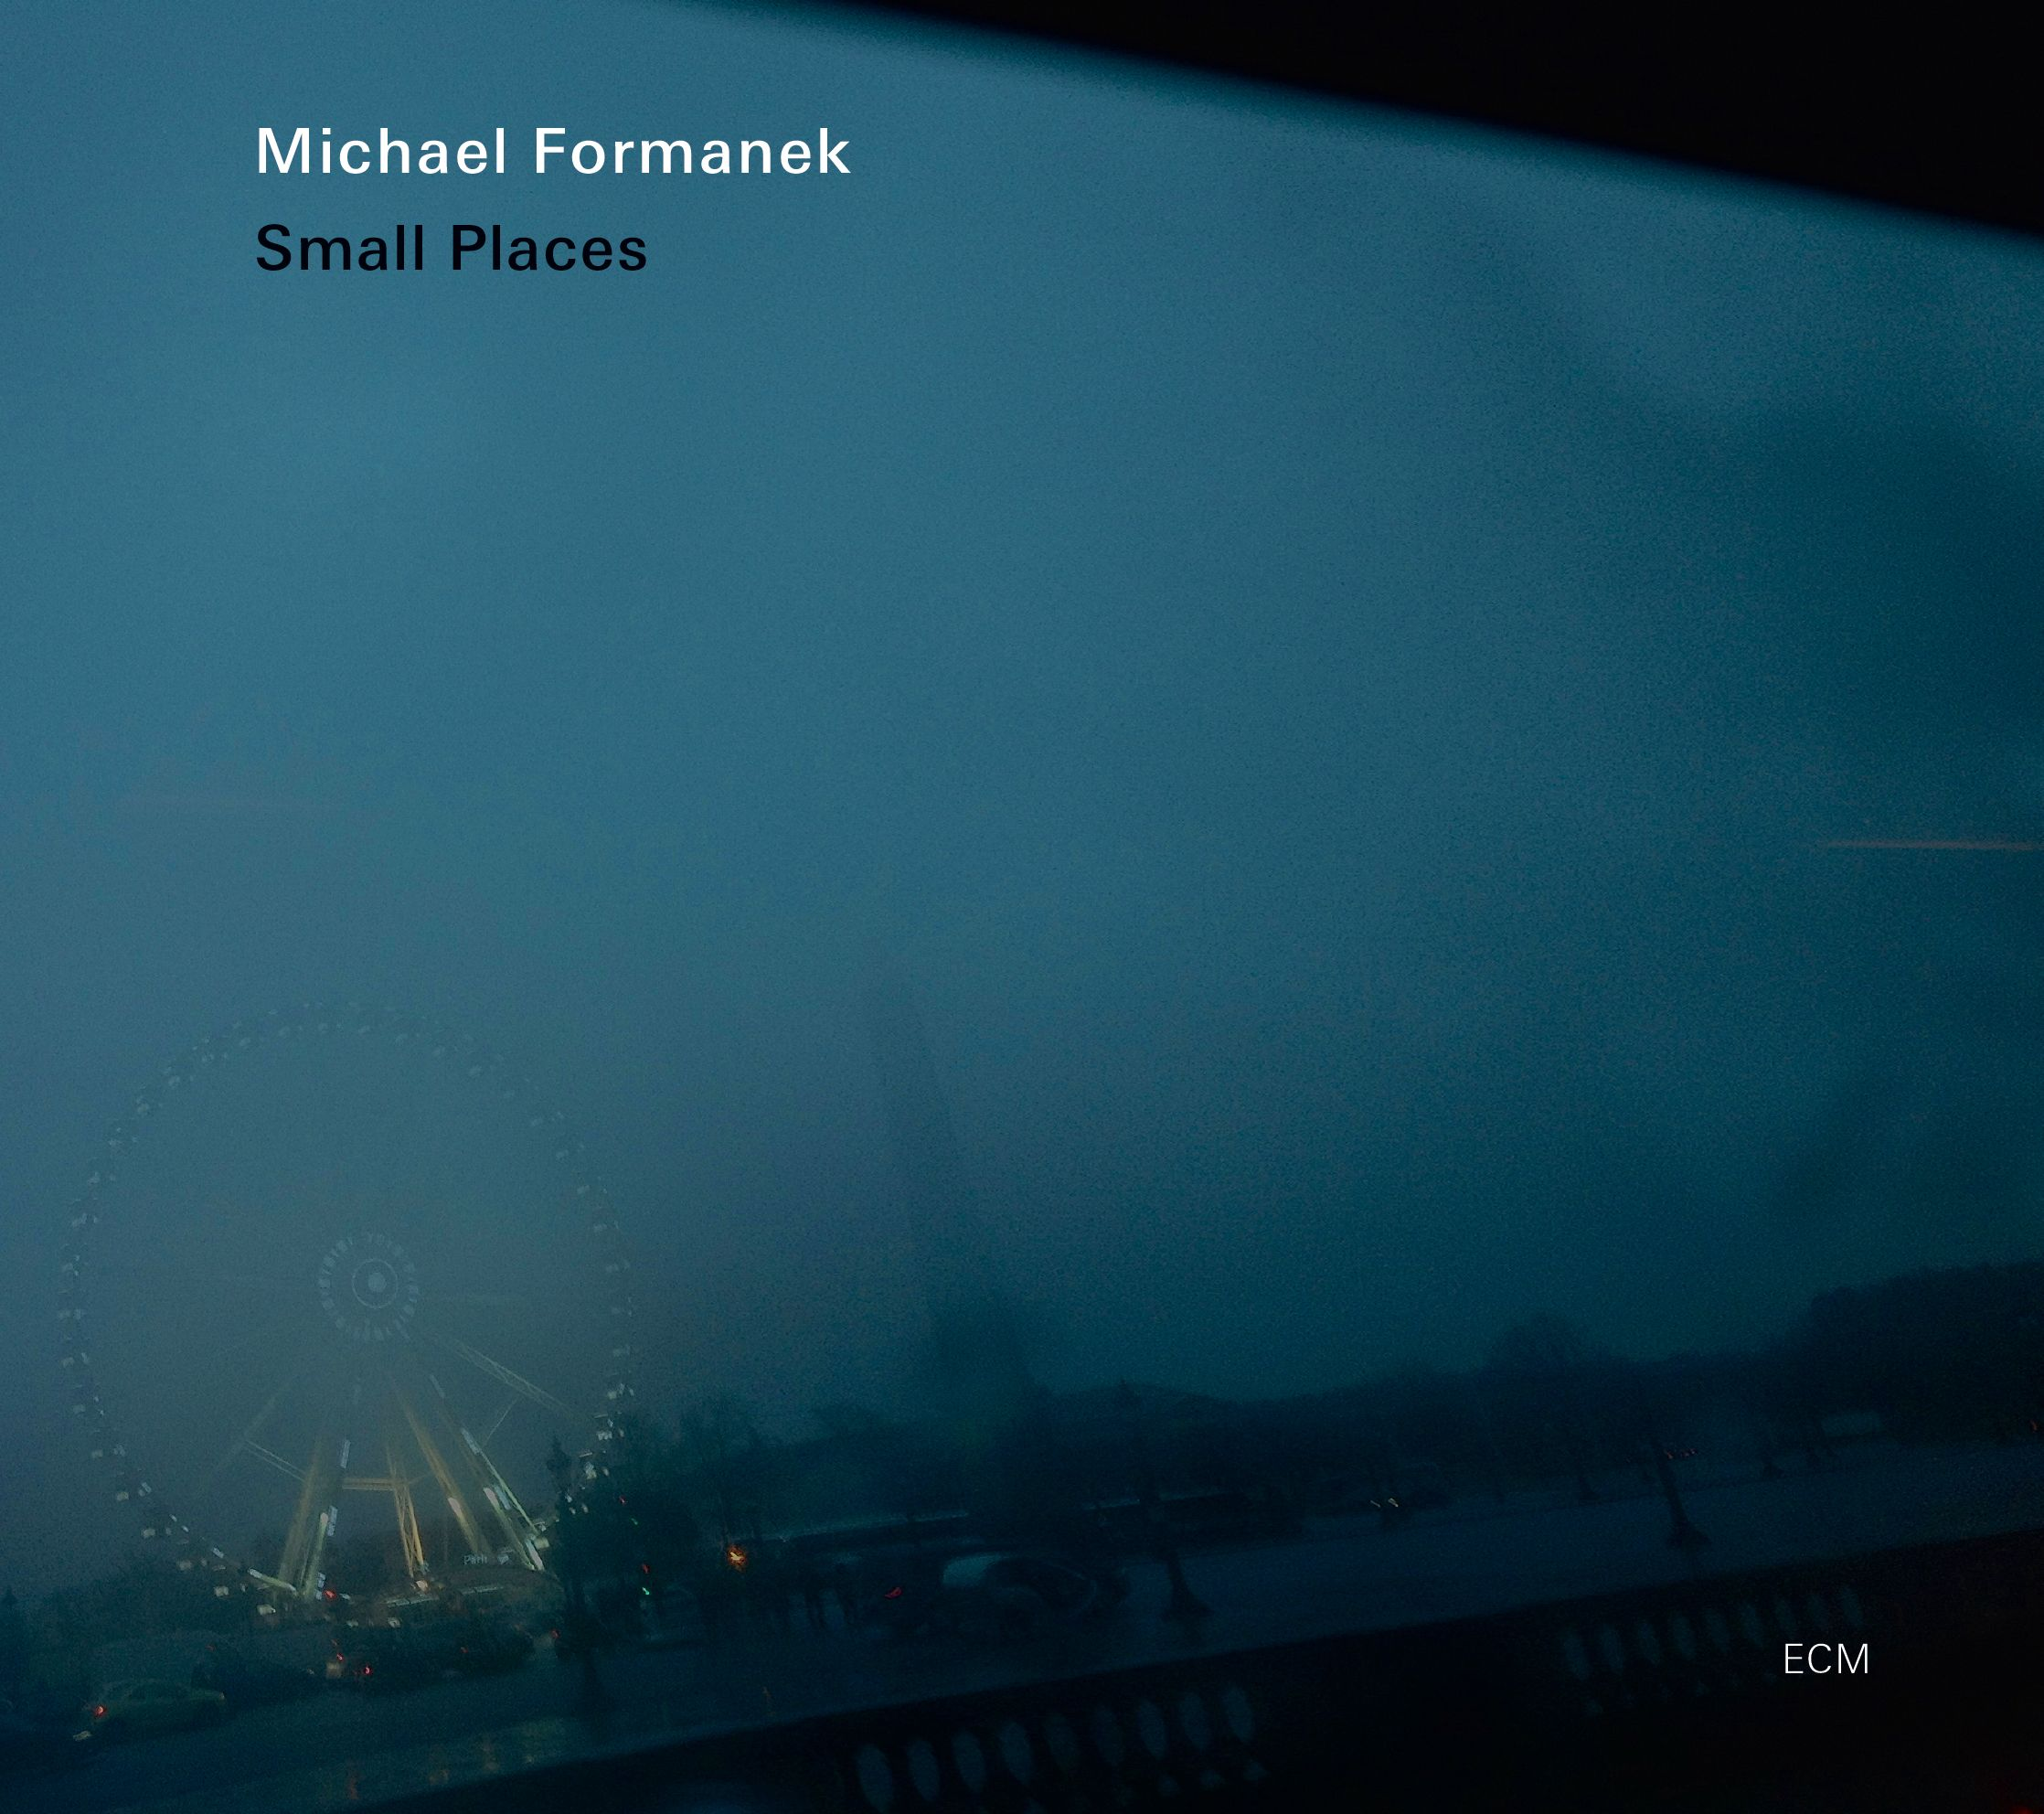 ecm cover art - Google 검색